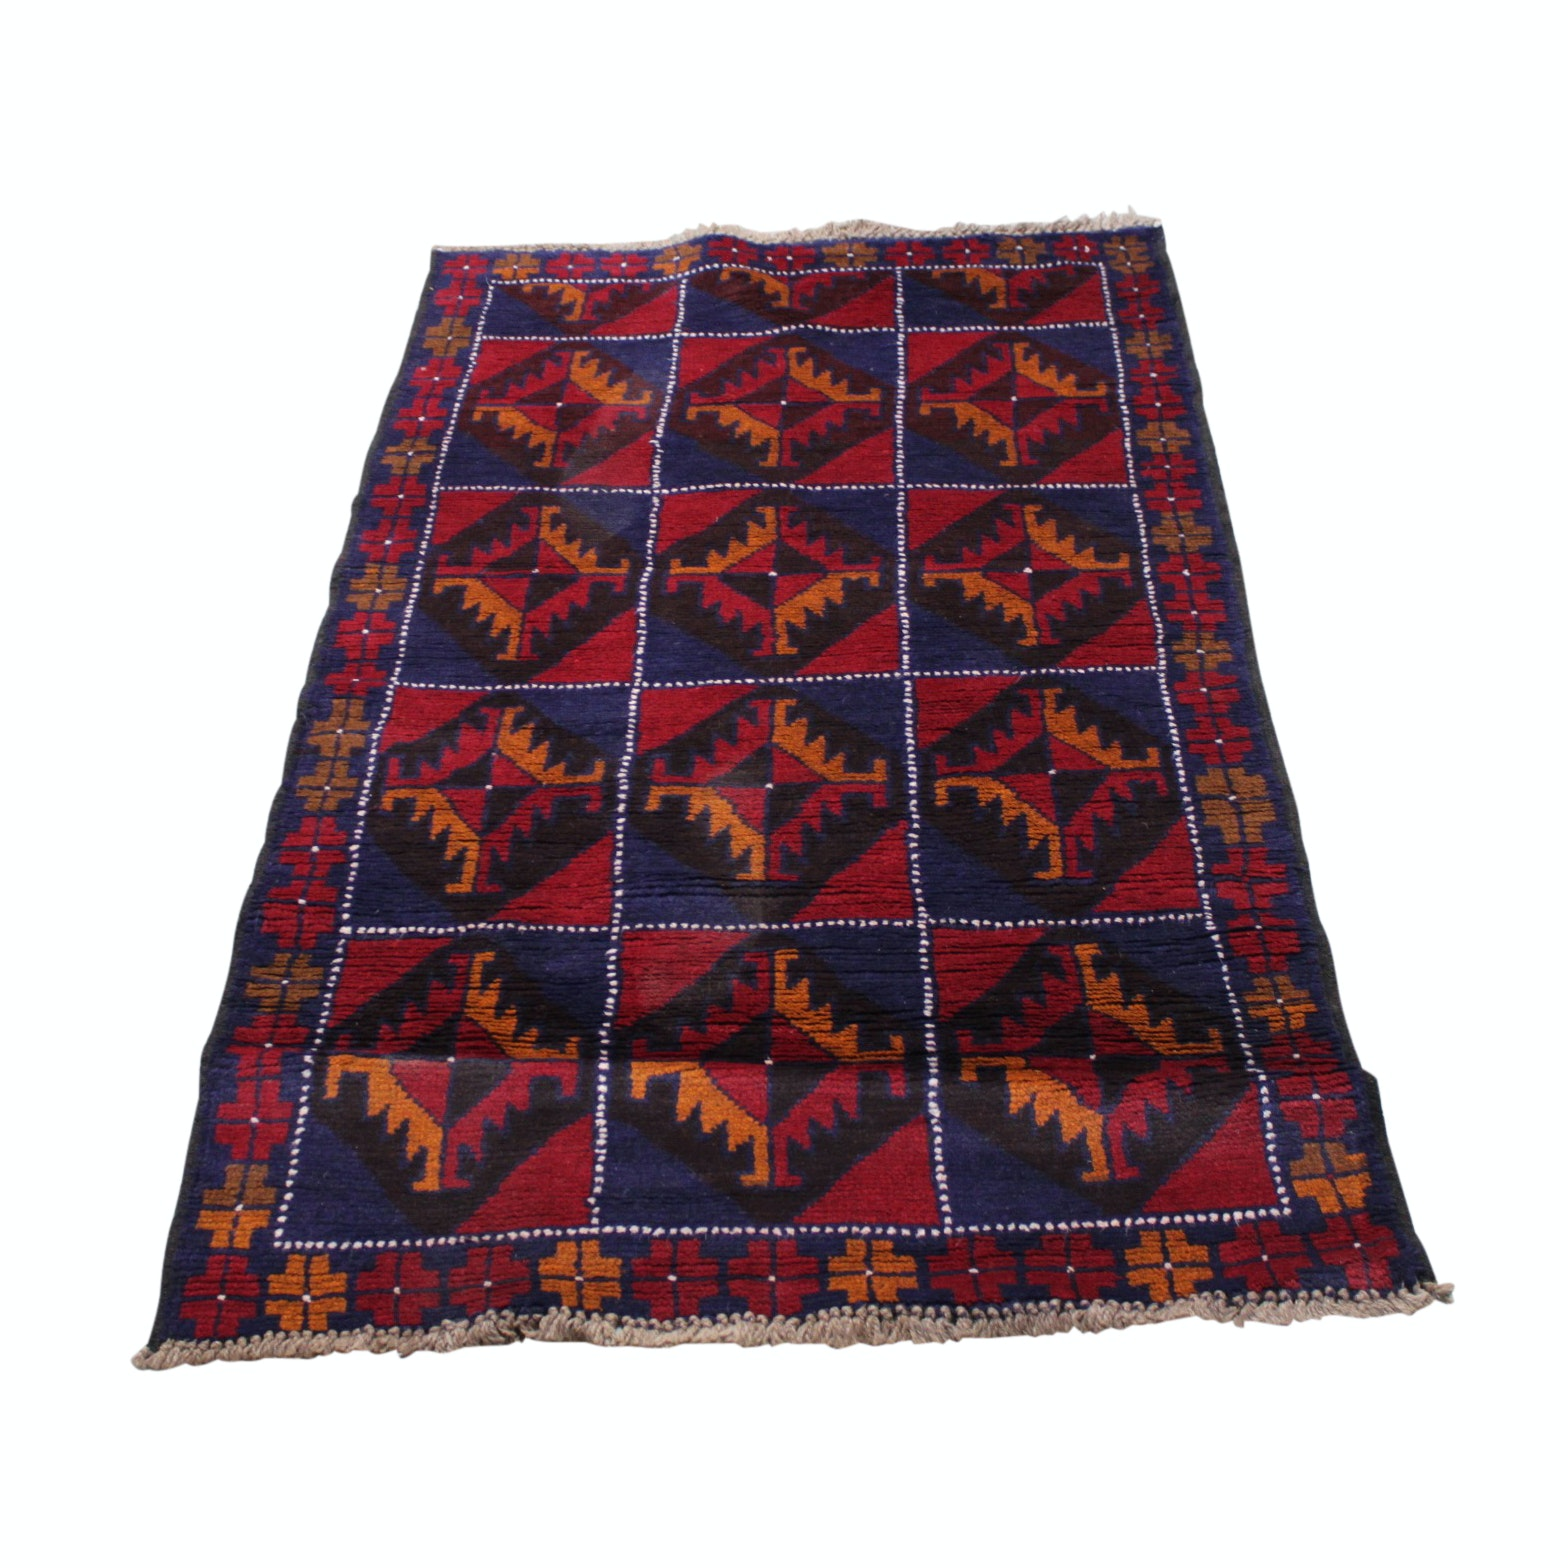 3' x 5' Hand-Knotted Baluch Wool Accent Rug